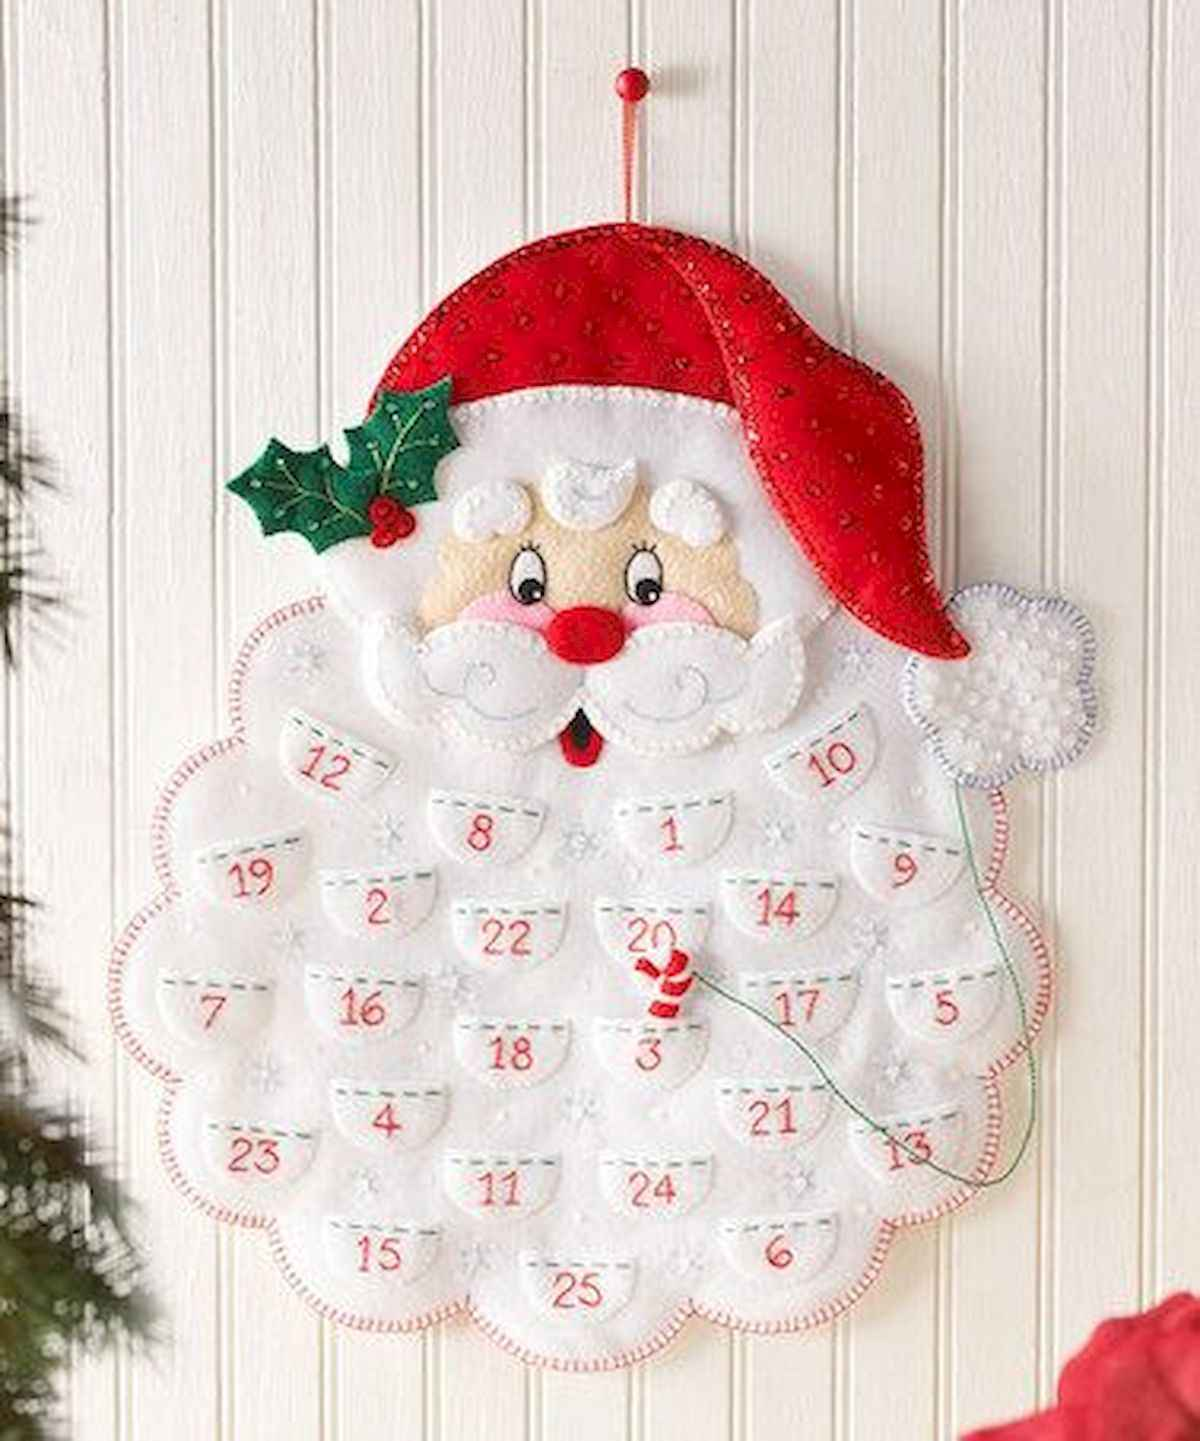 60 awesome wall art christmas ideas decorations (5)